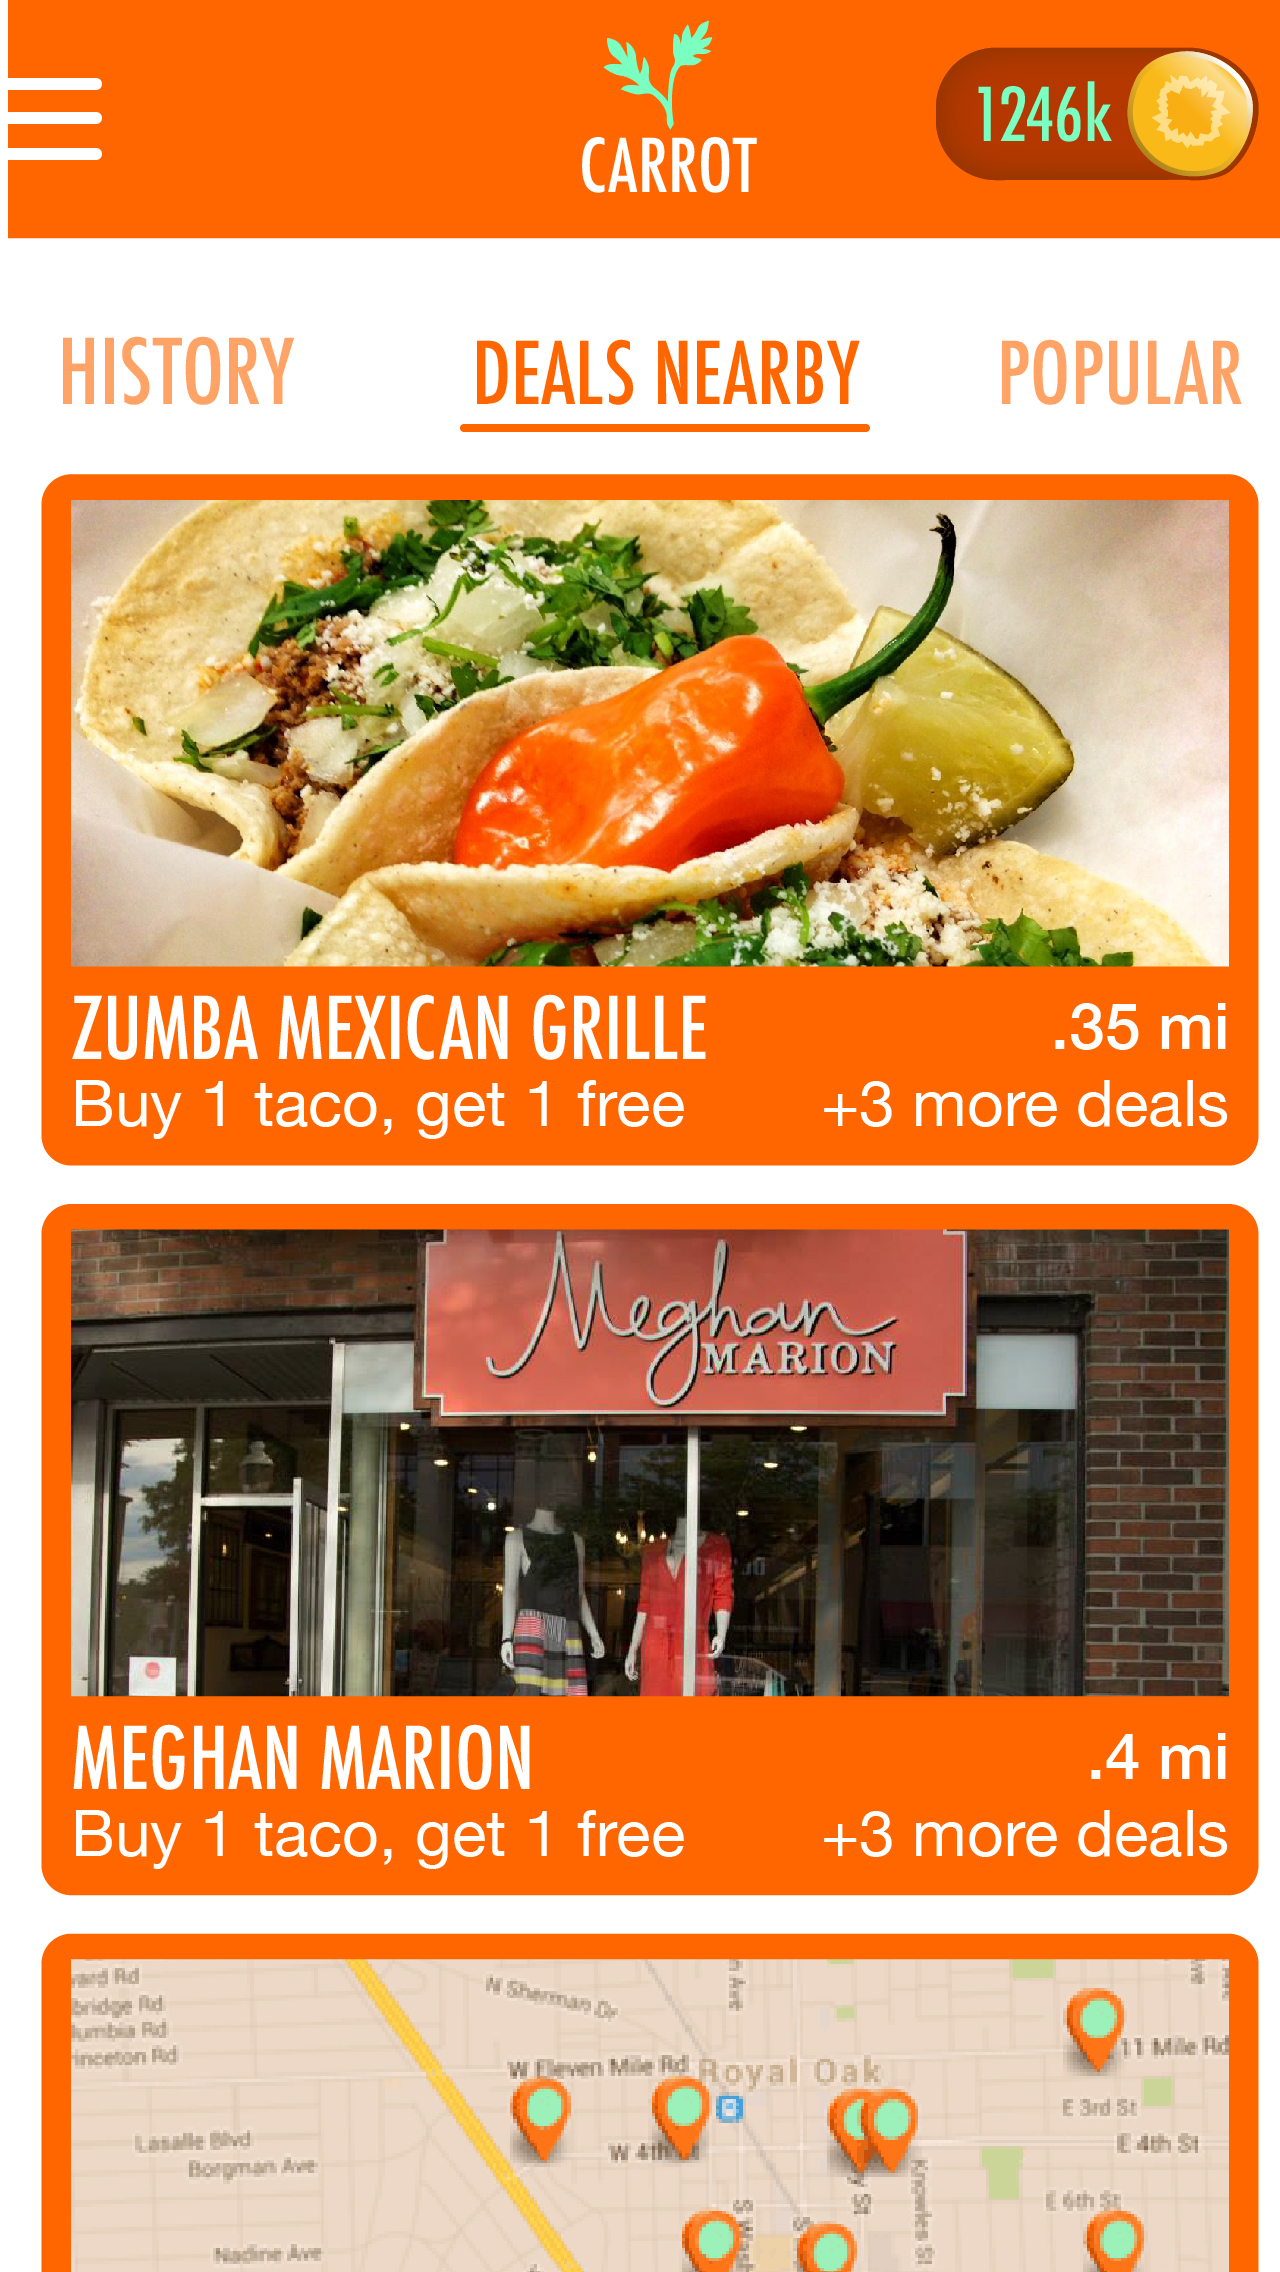 Merchants display a featured deal, but have the option of up to 4 promotions that can be offered.